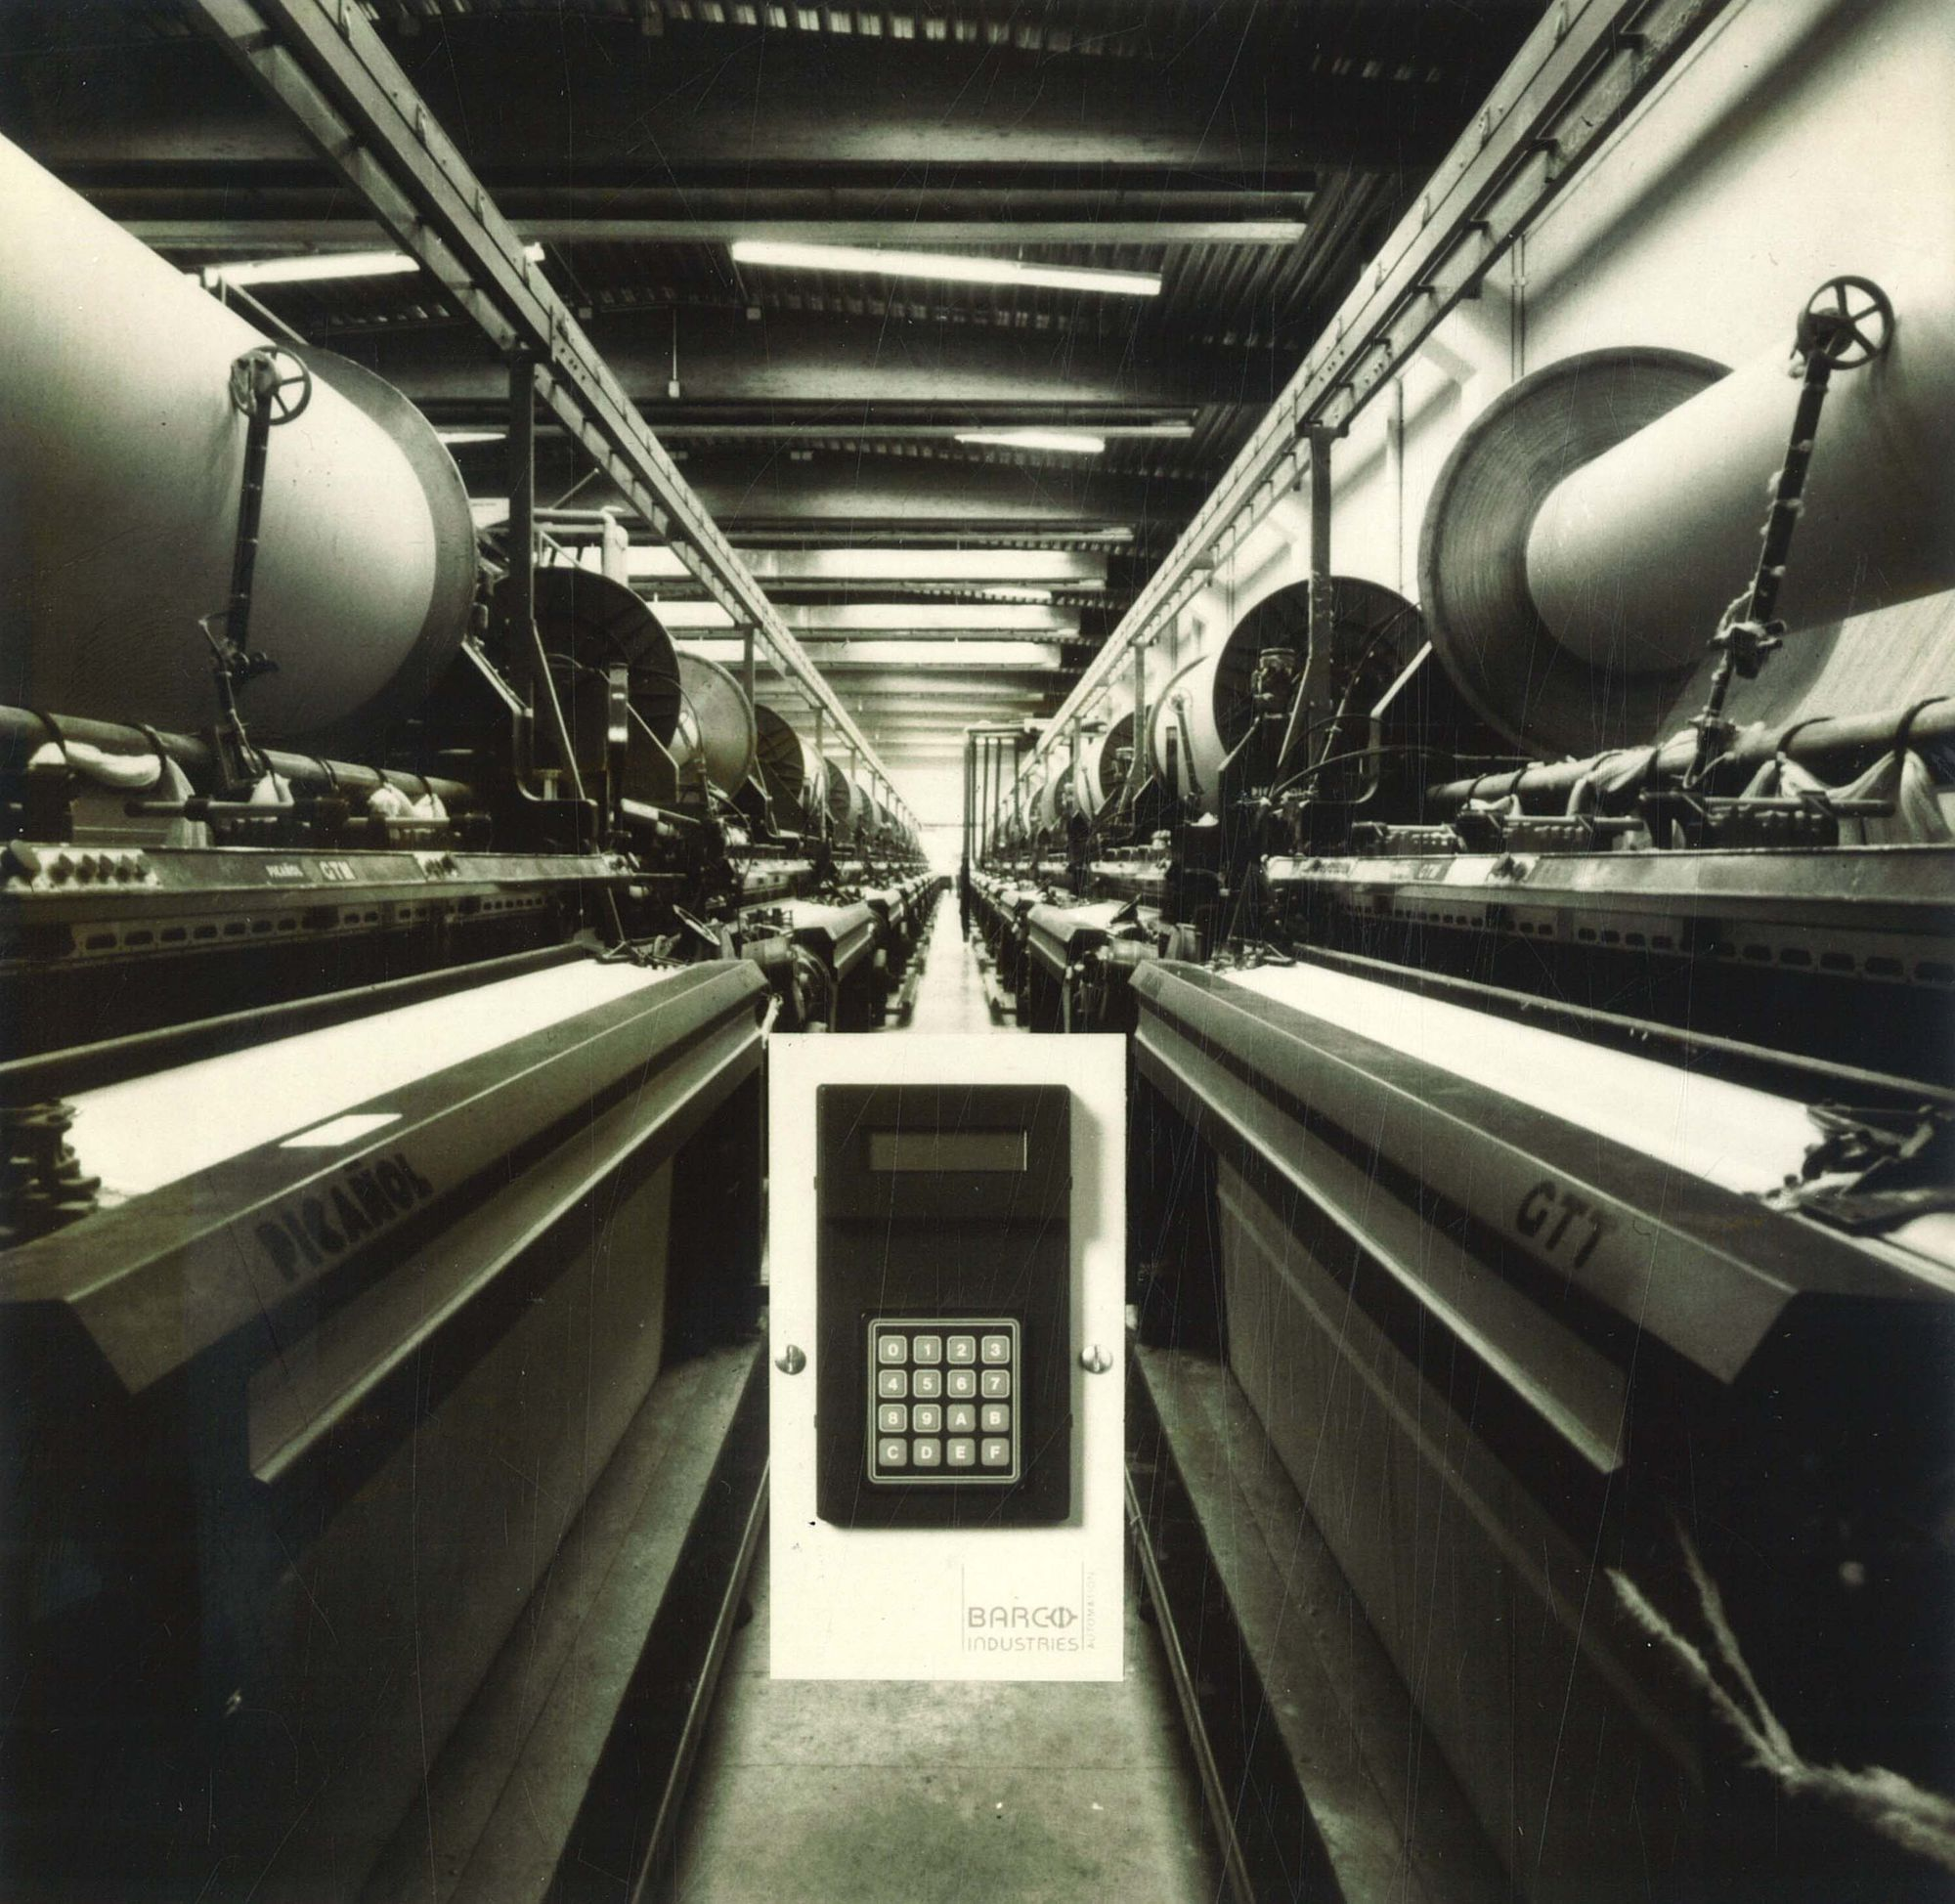 Barco-Industries-Automation NV 1986